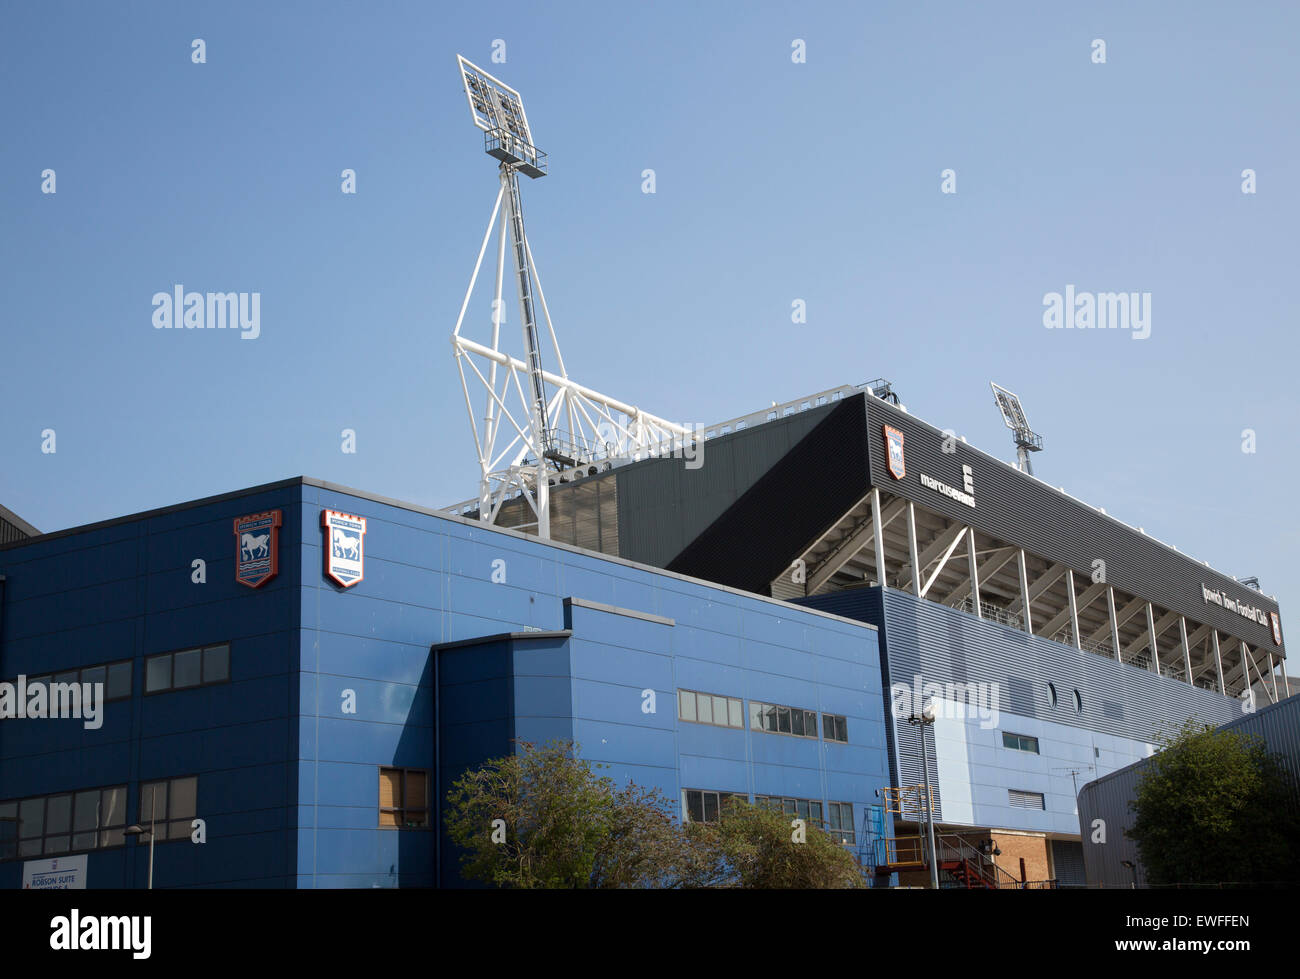 Ipswich Town Stock Photos & Ipswich Town Stock Images